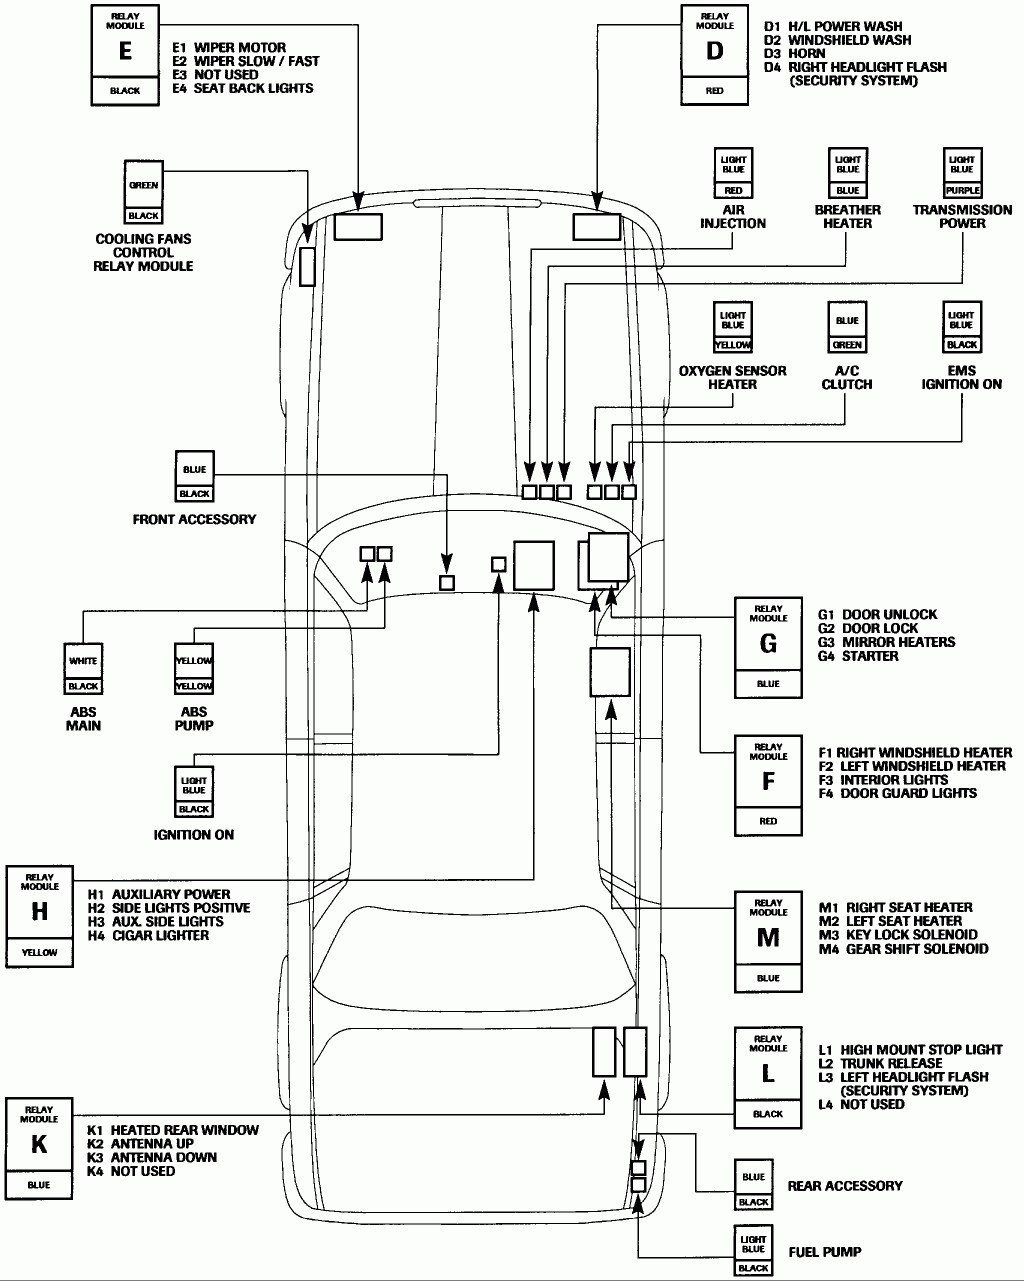 [DIAGRAM] 1998 Jaguar Vanden Plas Wiring Diagram FULL